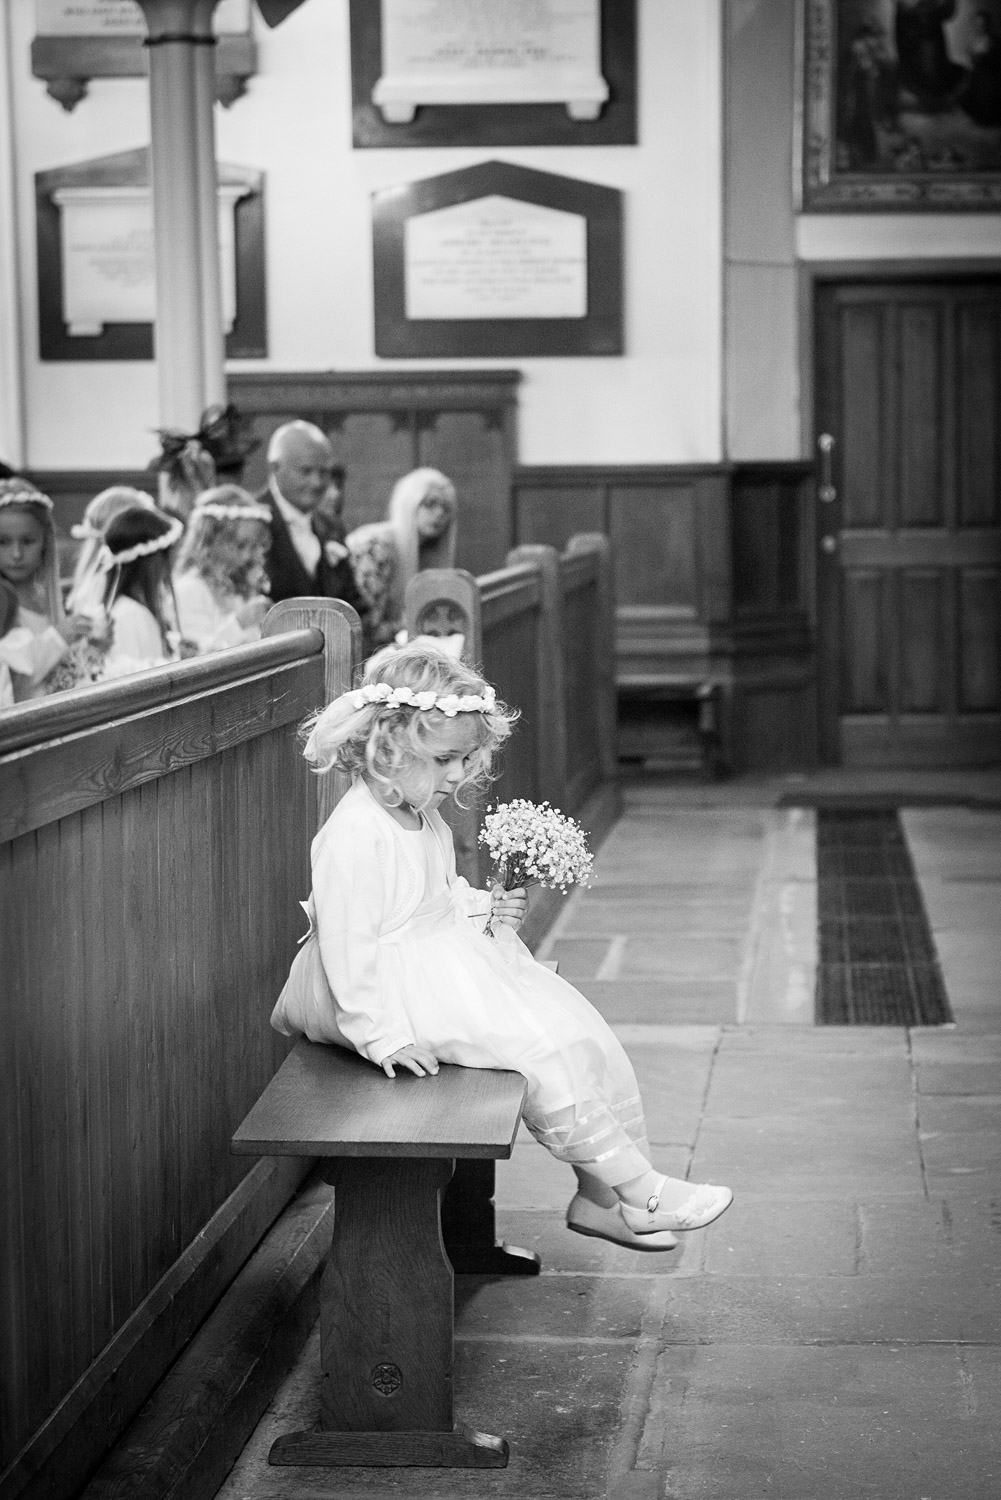 Copy of little flower girl at wedding ceremony